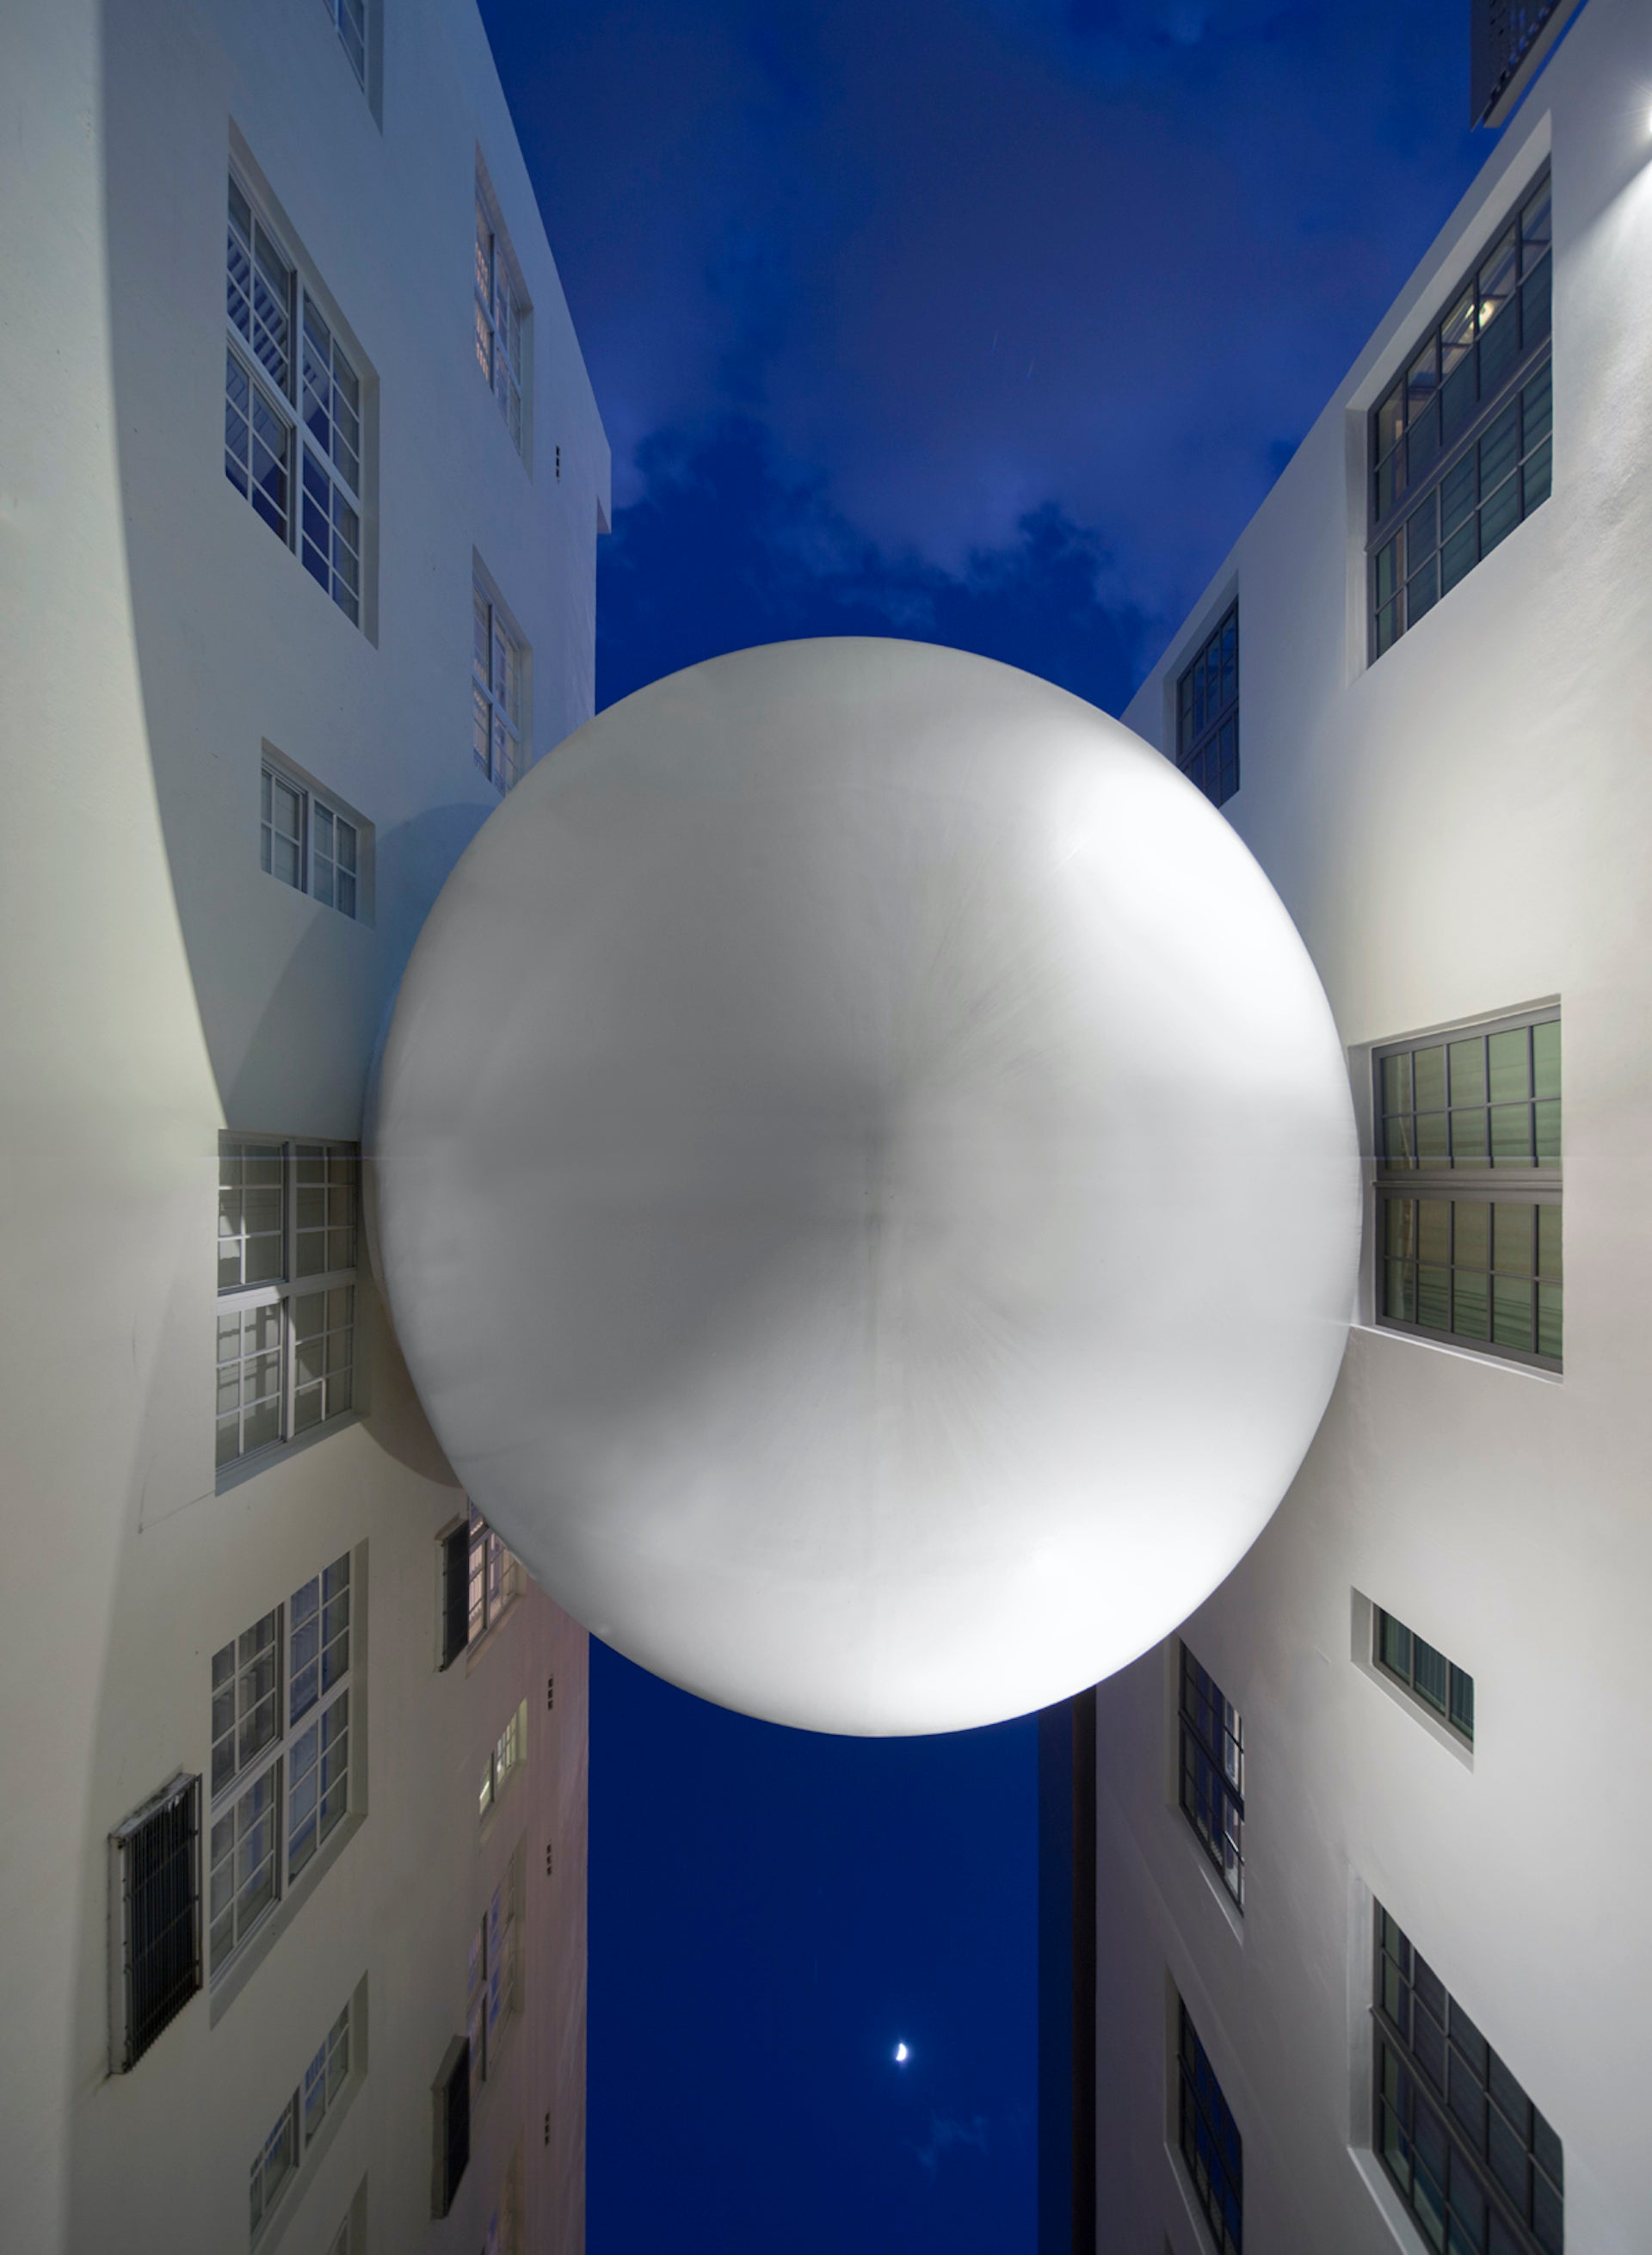 """When asked to identify a symbol of American design, Moore responds: """"The Bridge connecting the Betsy and Carlton hotels on South Beach by Allan Shulman. It's a bridge between old and new that looks like an alien orb wedged between two buildings, hovering above a grimy alleyway. It's mesmerizing and perfect. It is a wacky and elegant approach to dealing with additions to historic structures."""" Photo © Robin Hill; Courtesy of Shulman + Associates"""